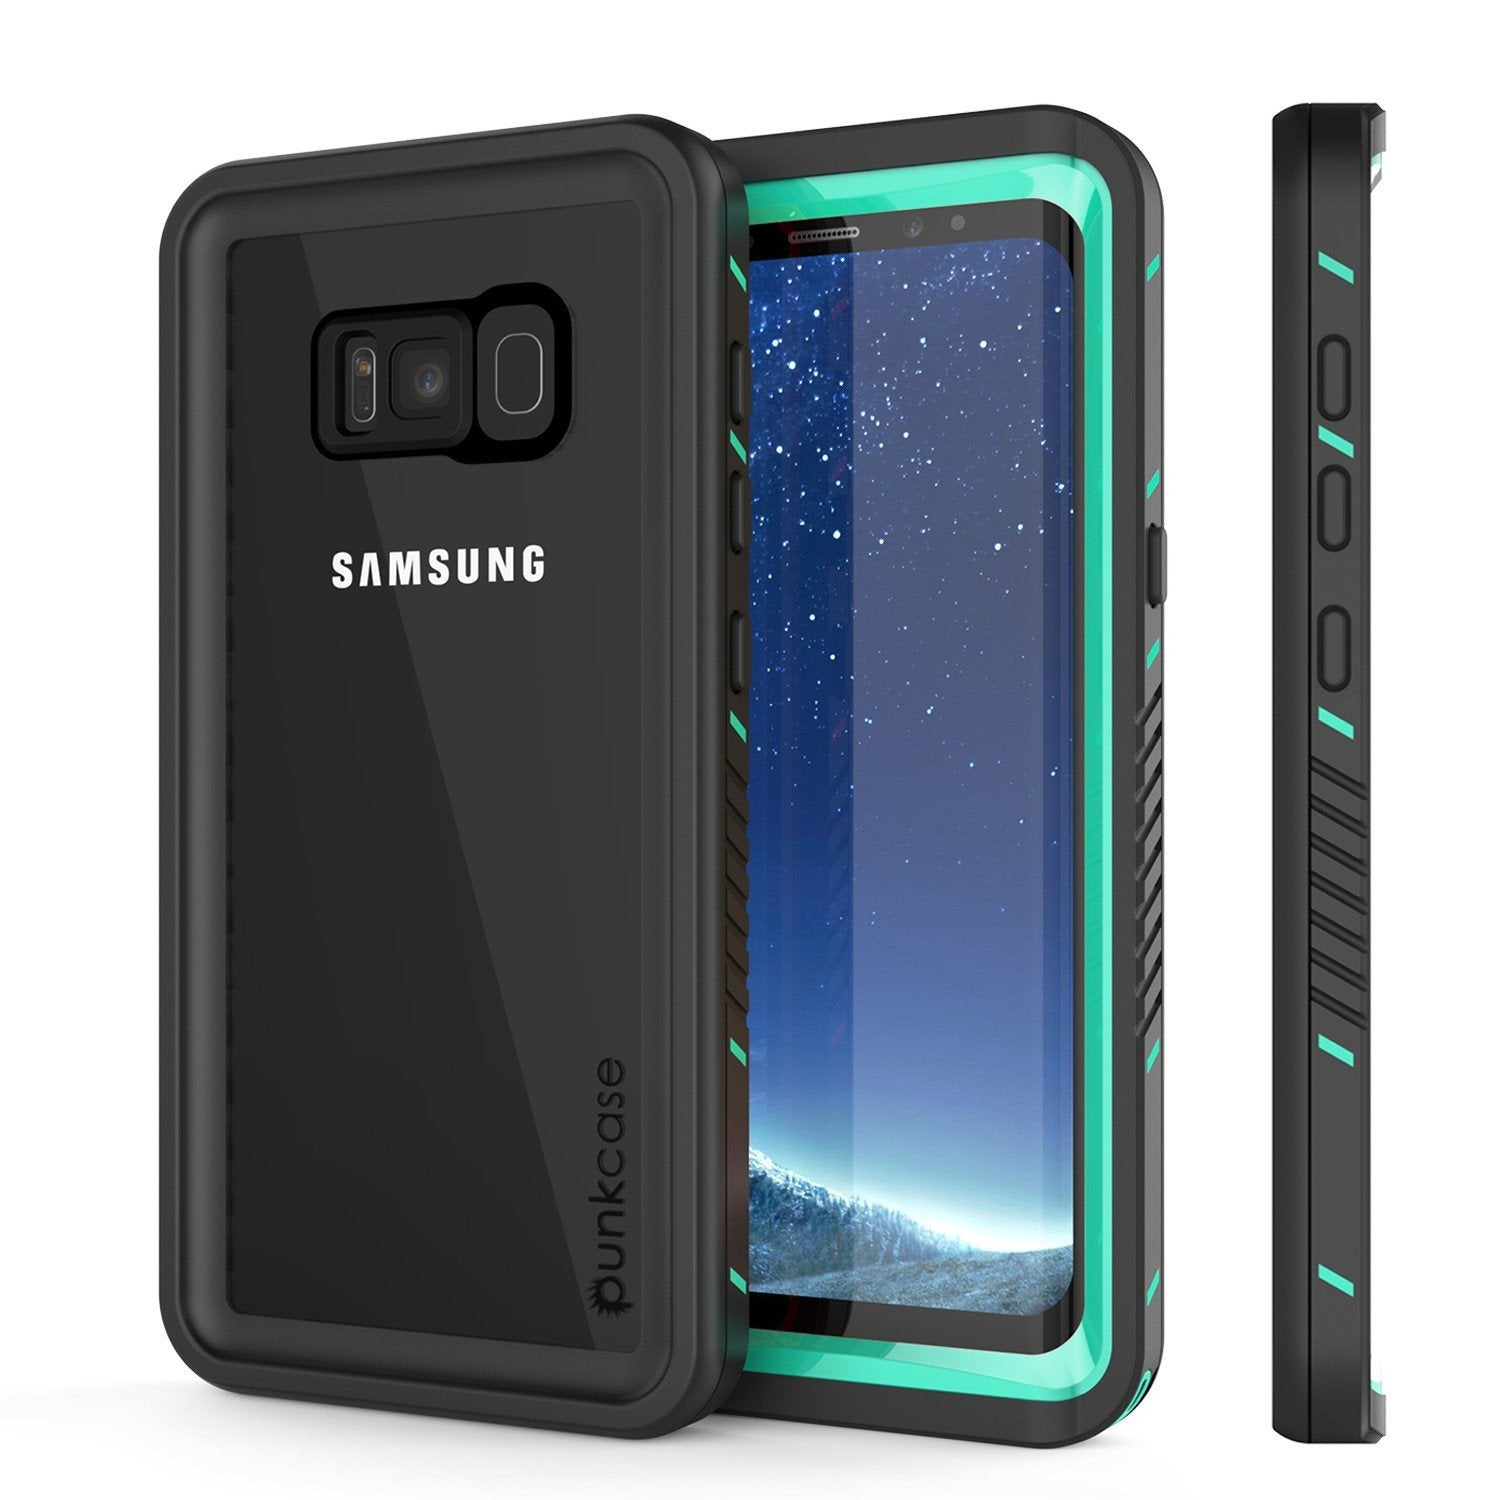 Galaxy S8 PLUS Case, Punkcase [Extreme Series] Armor Teal Cover